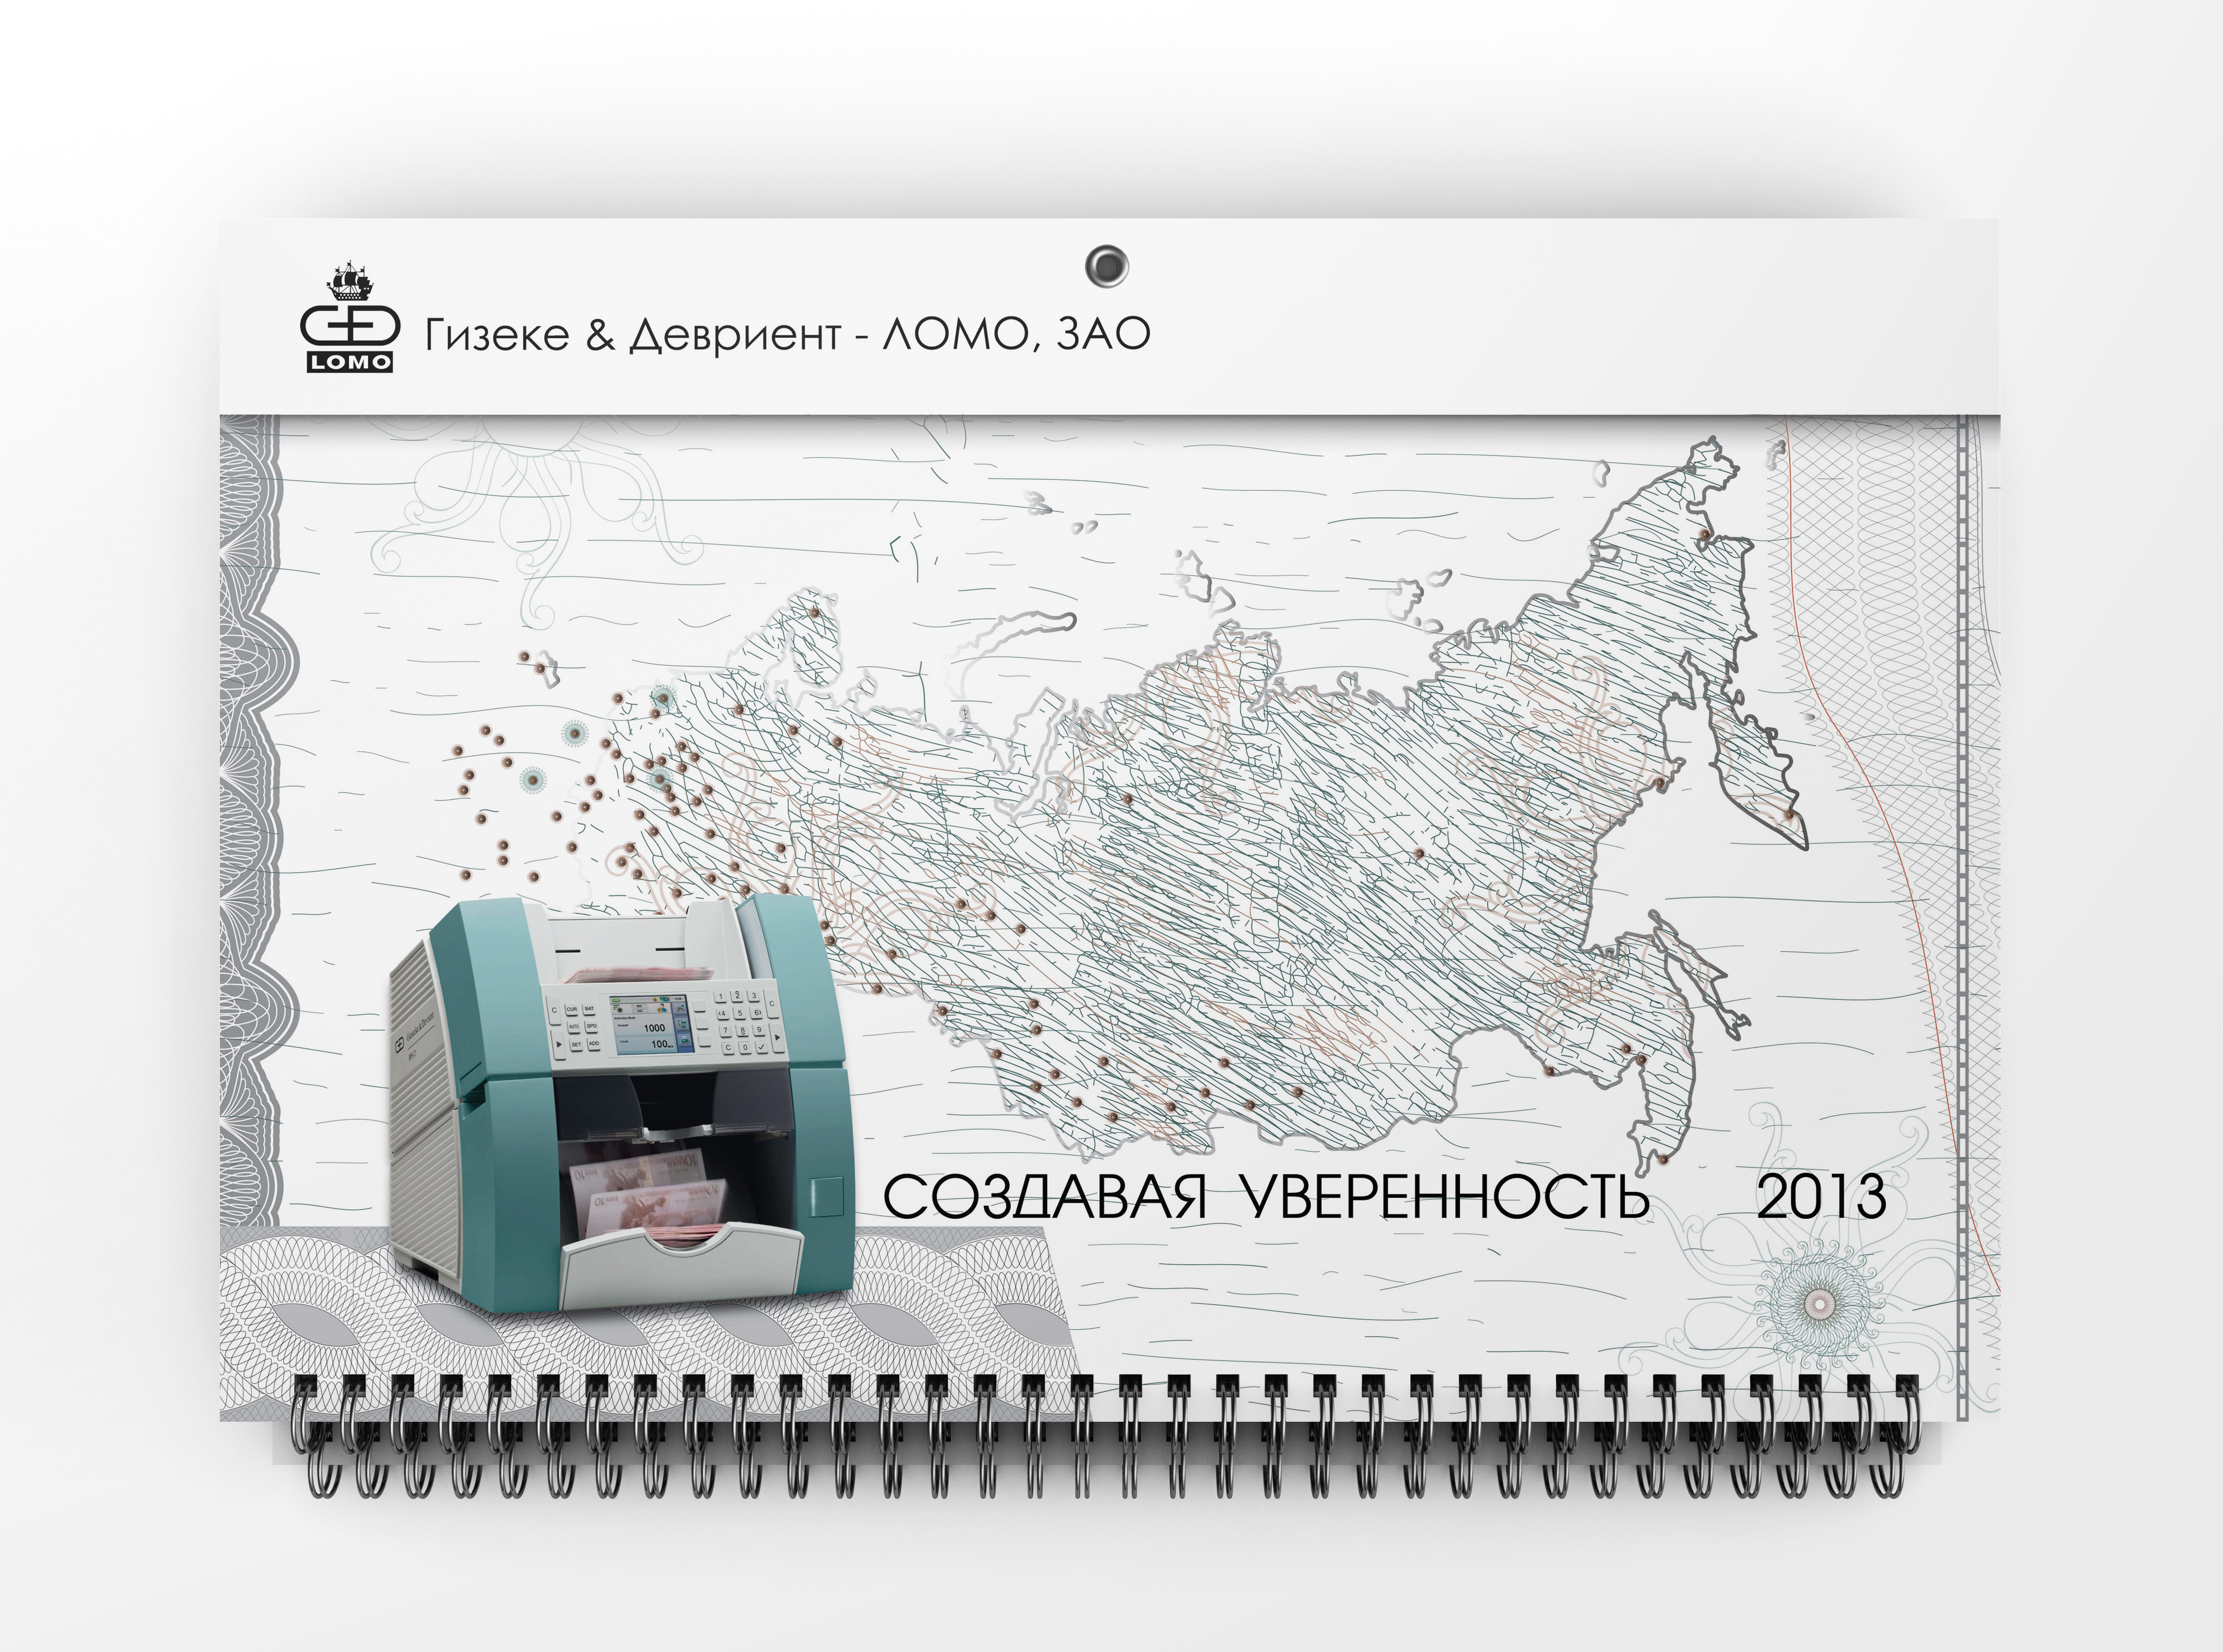 wall_calendar_mock_up_2_ЛОМО2